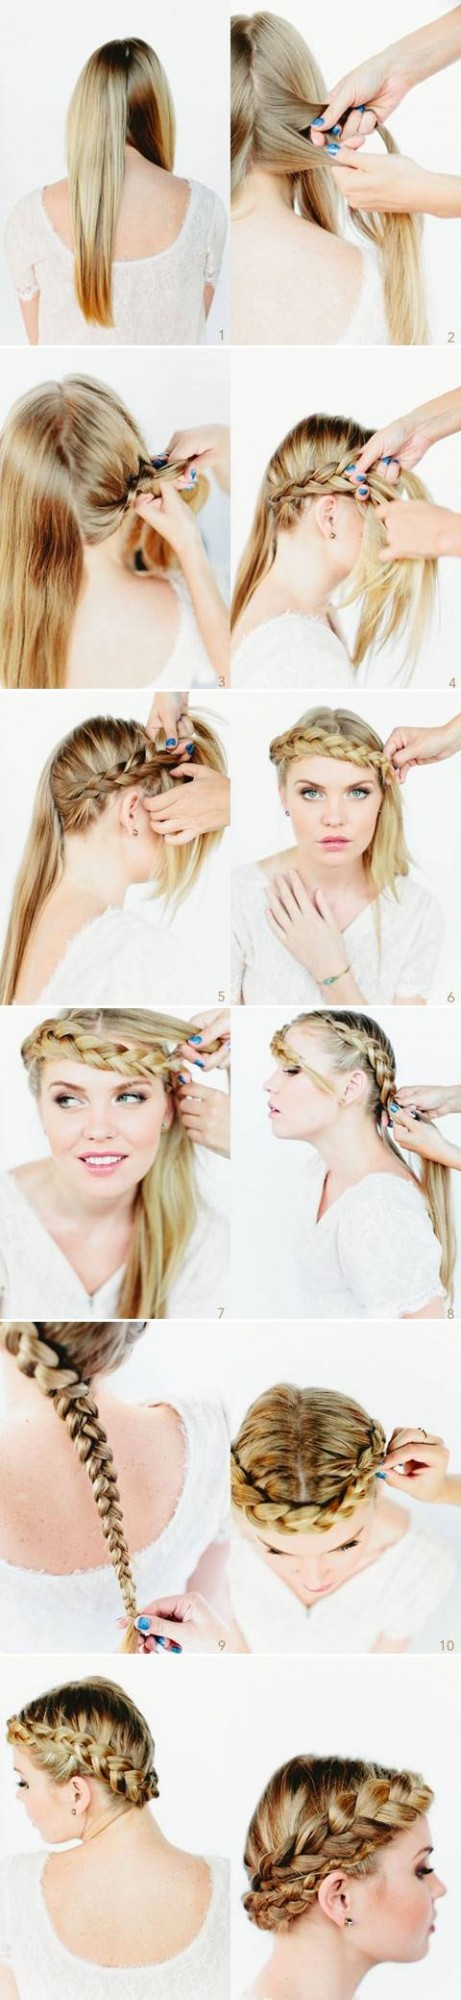 Tremendous 20 Amazing Braided Hairstyles Tutorials Style Motivation Hairstyle Inspiration Daily Dogsangcom